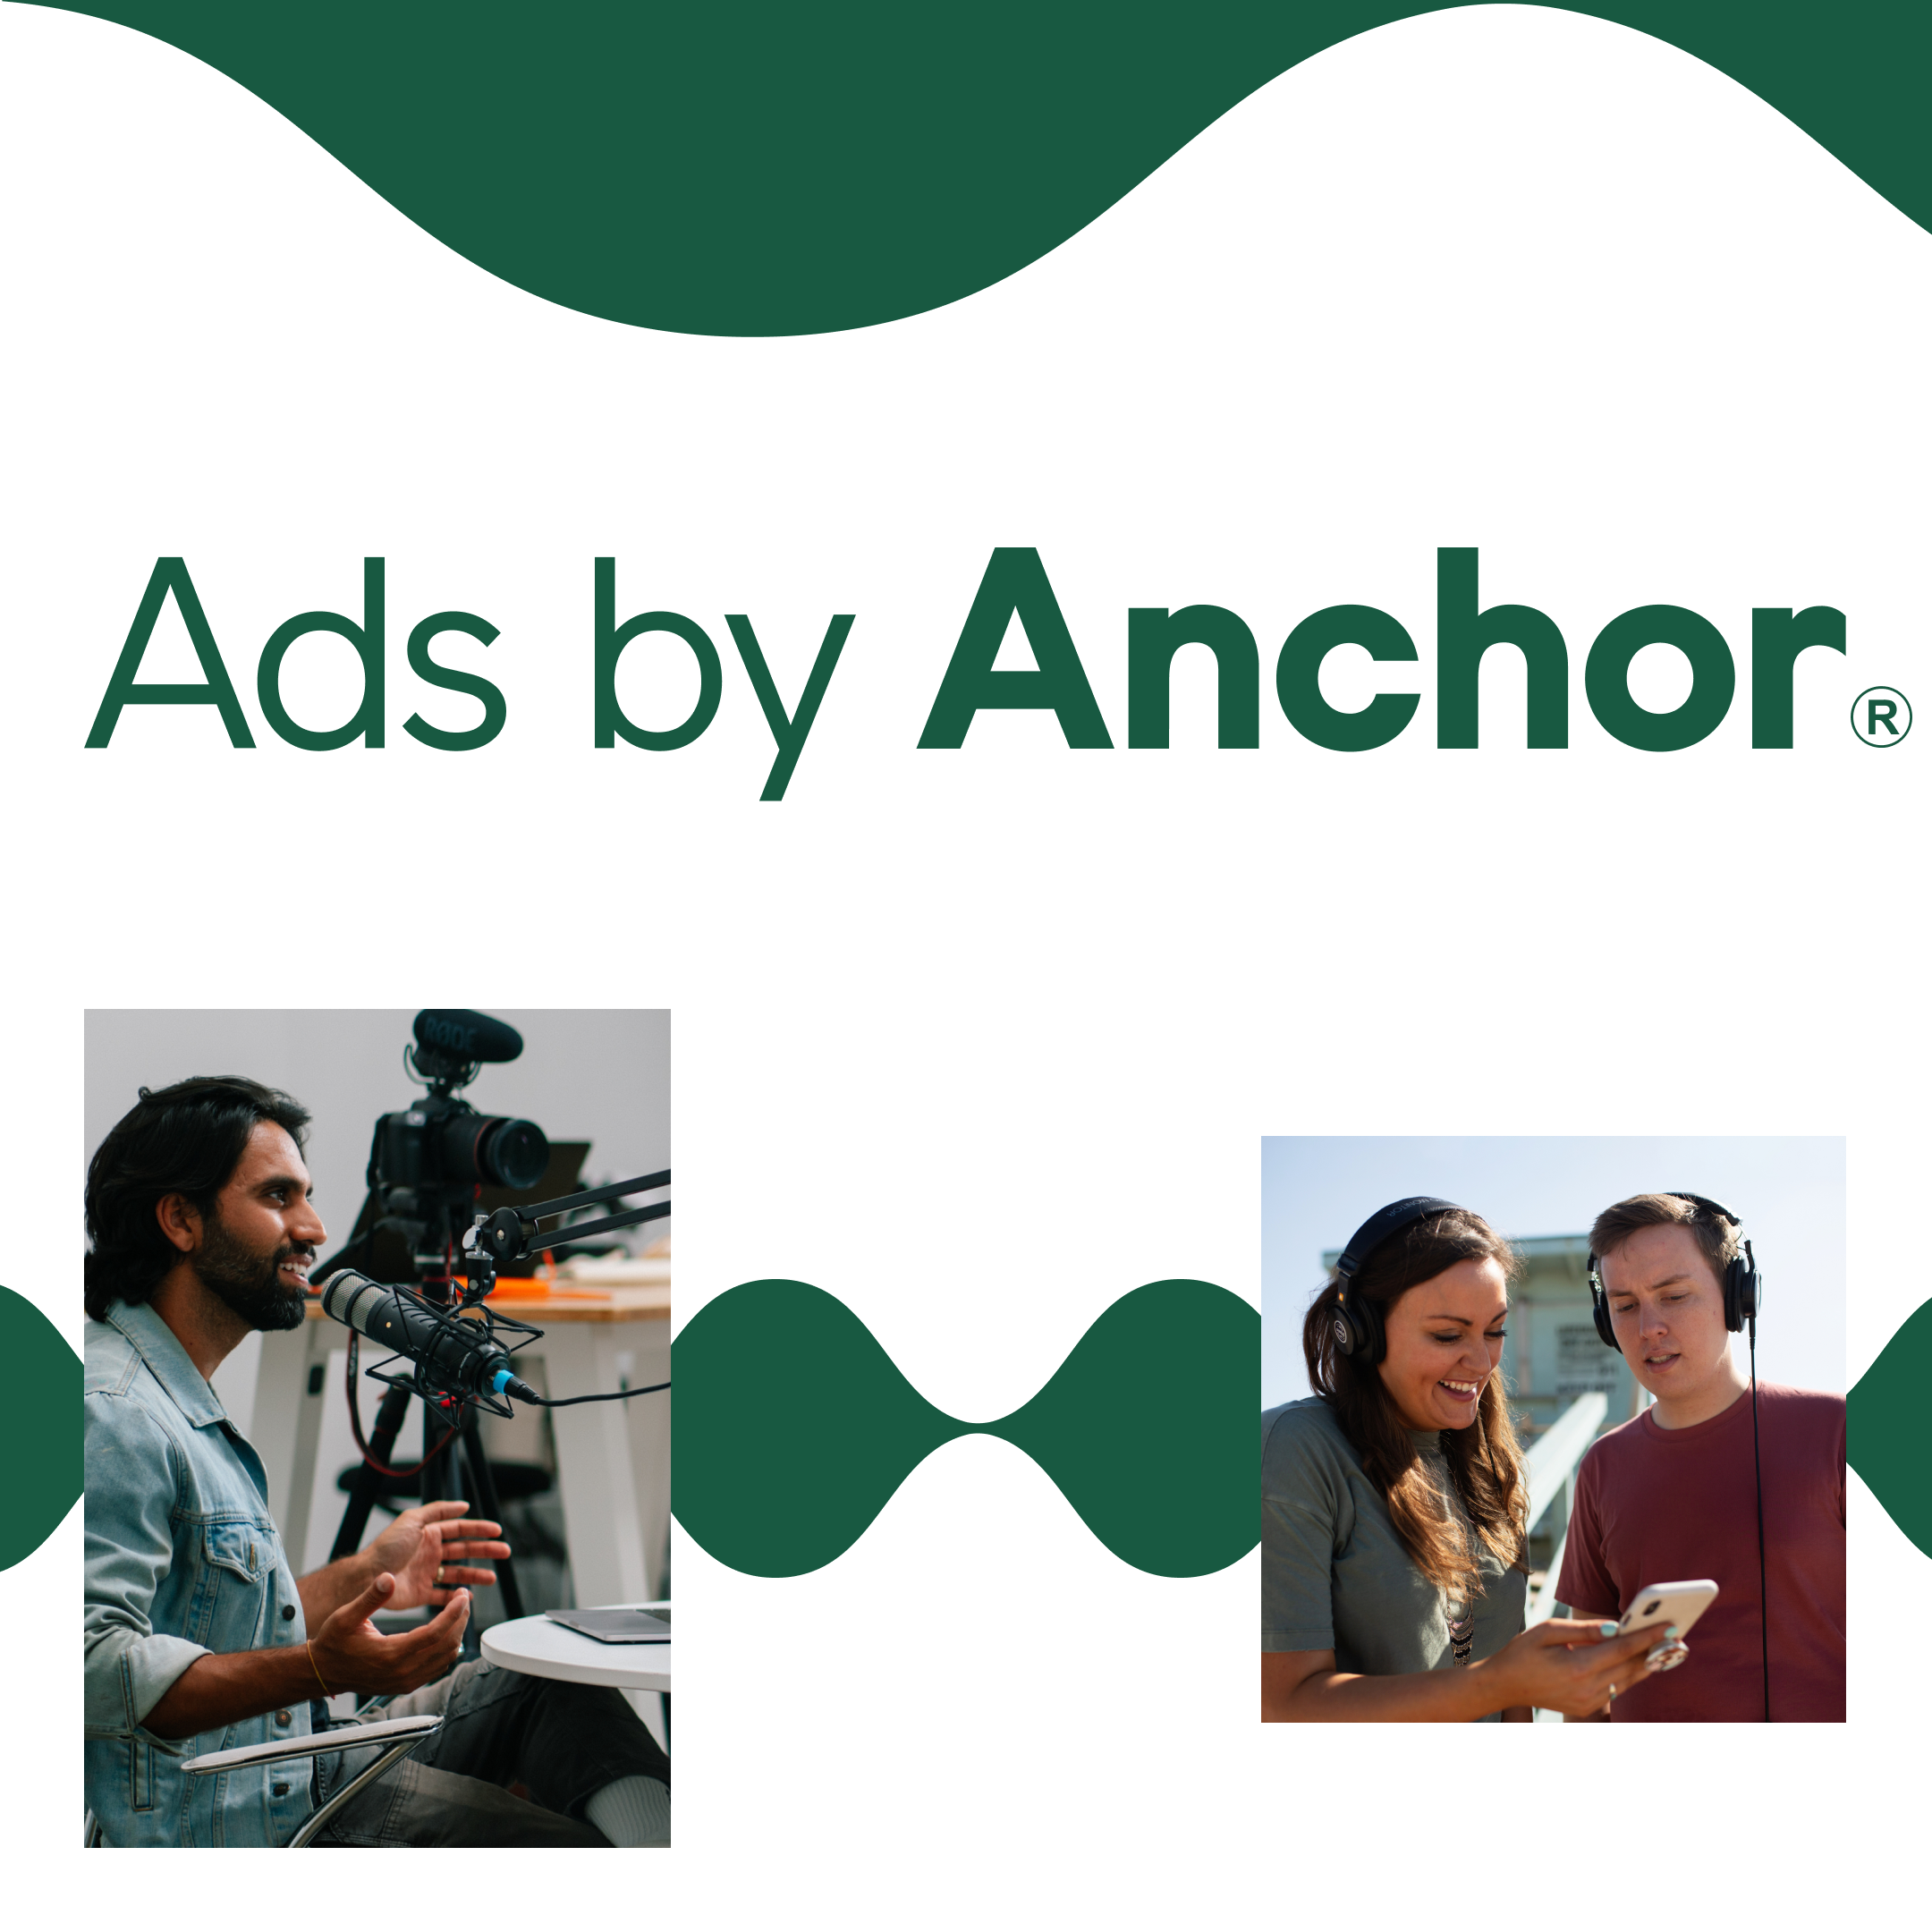 Ads by Anchor